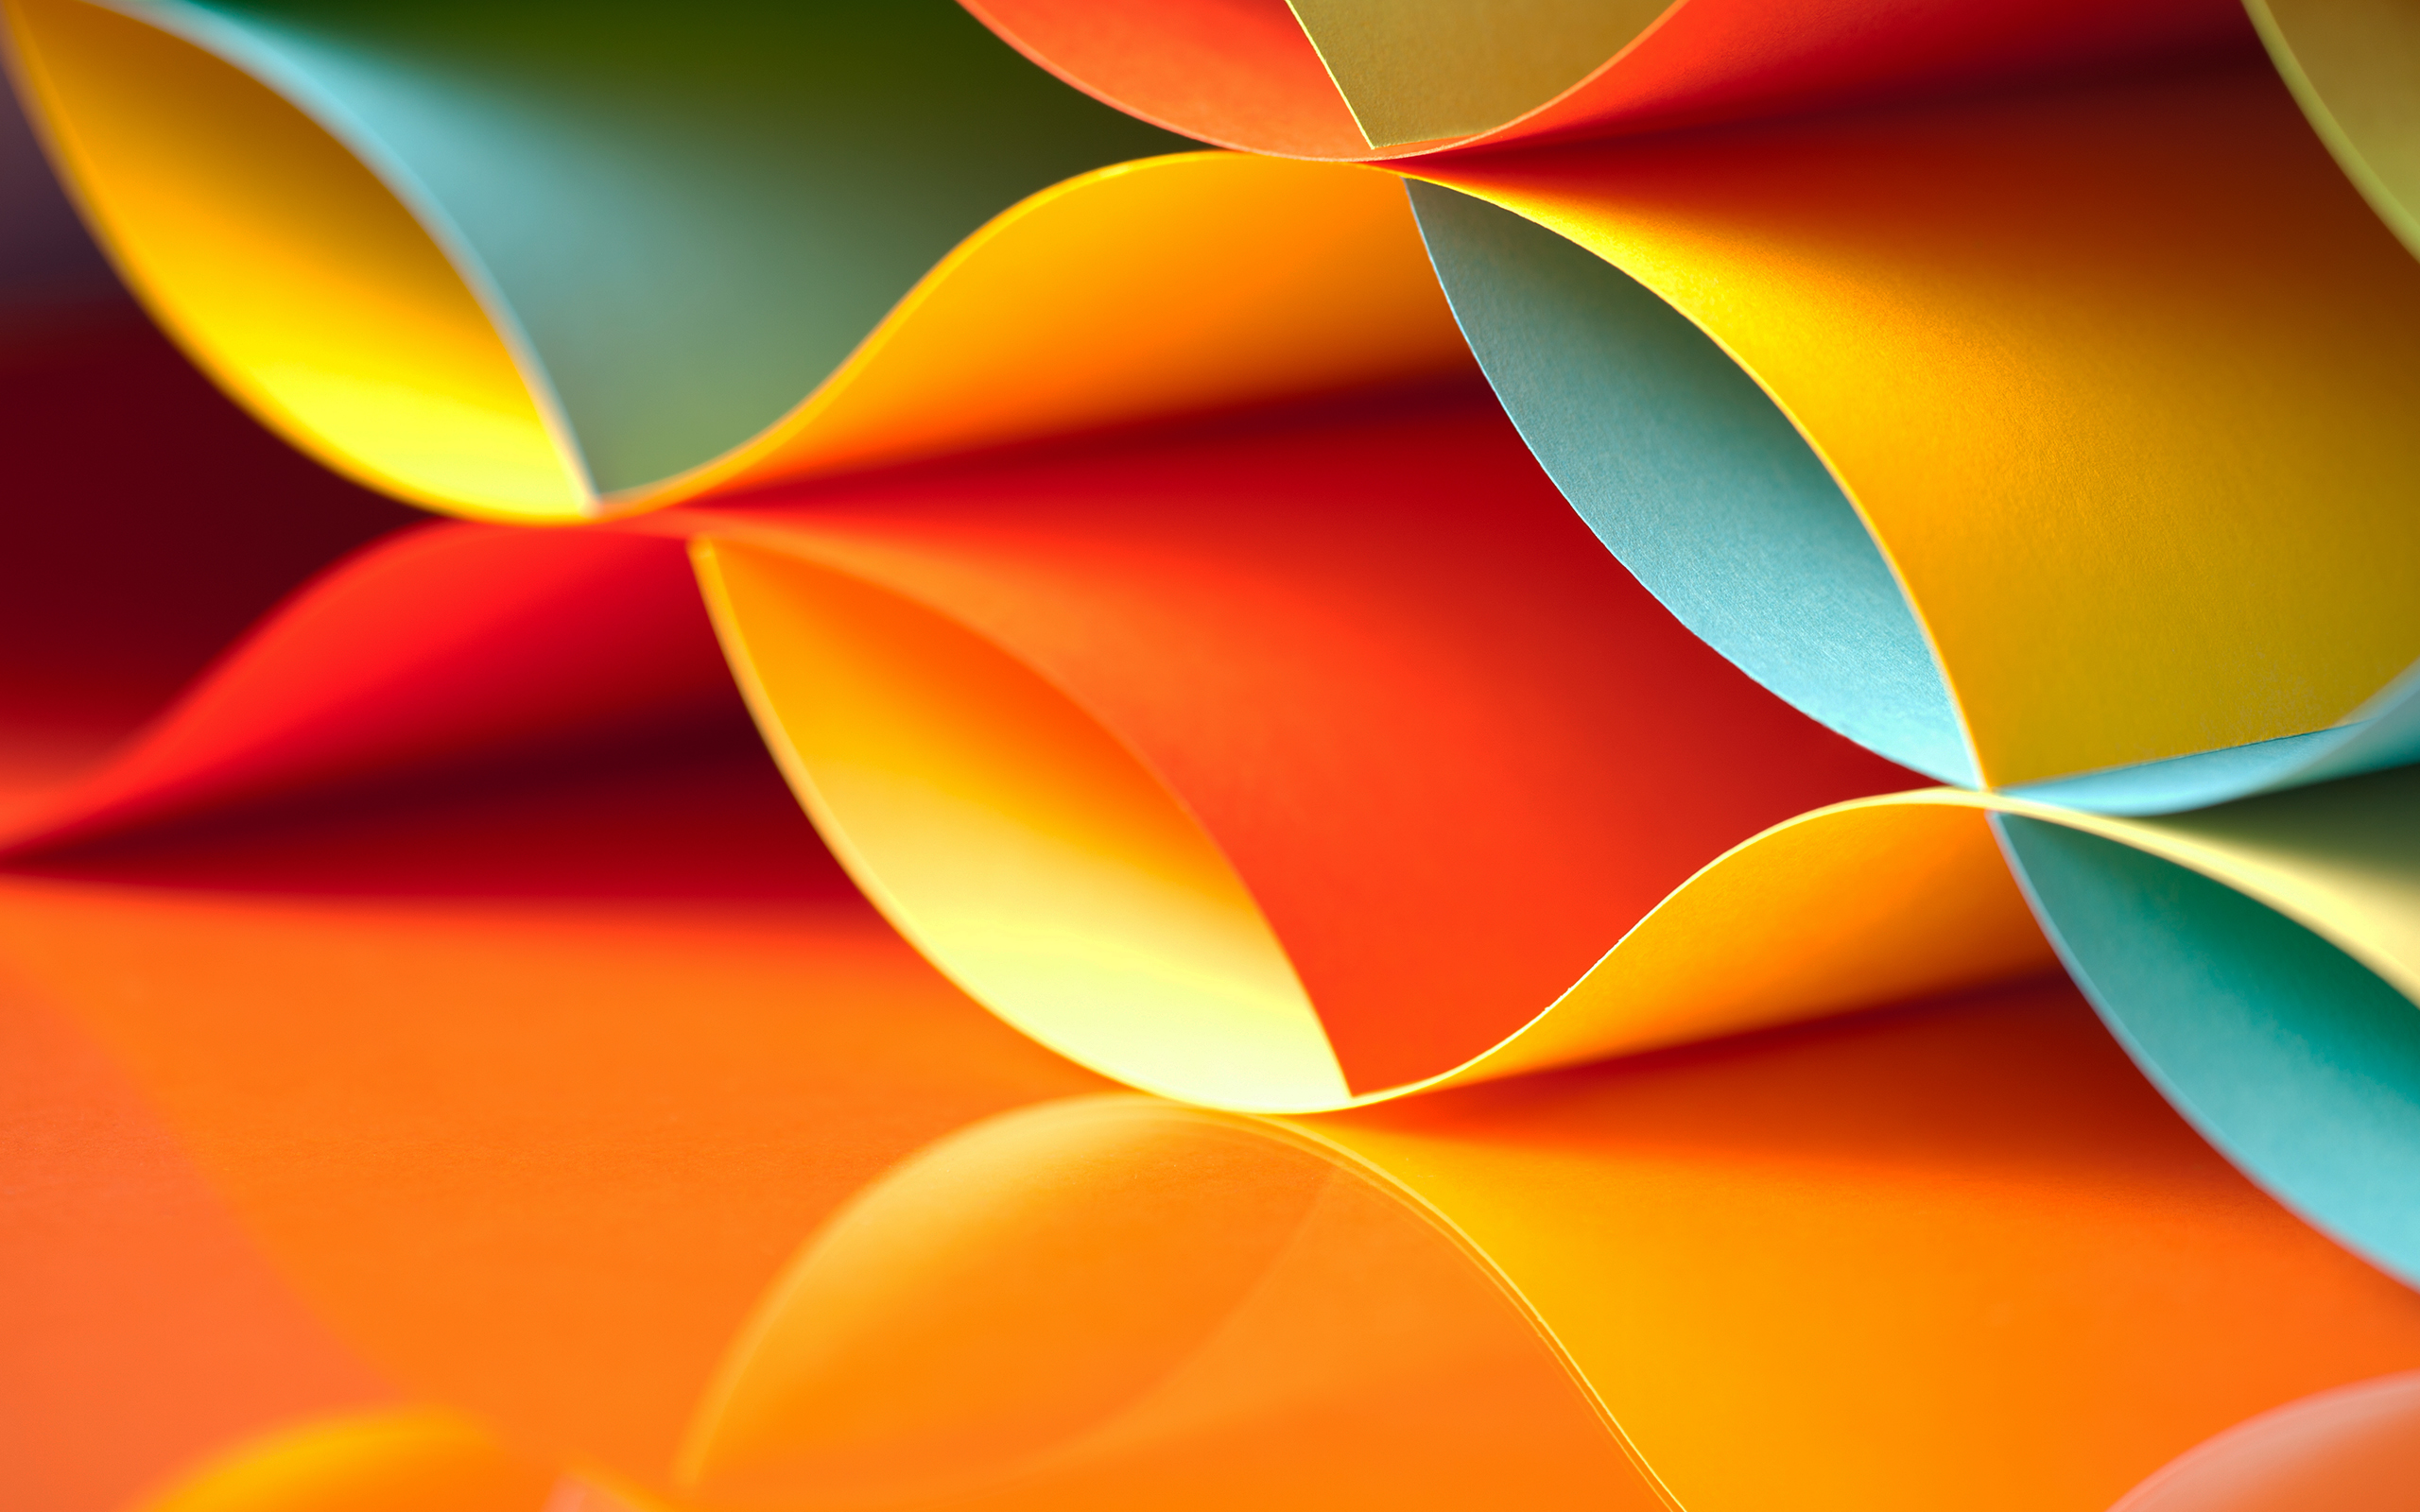 Colorful Papers HD553319300 - Colorful Papers HD - Papers, Colorful, Balloons